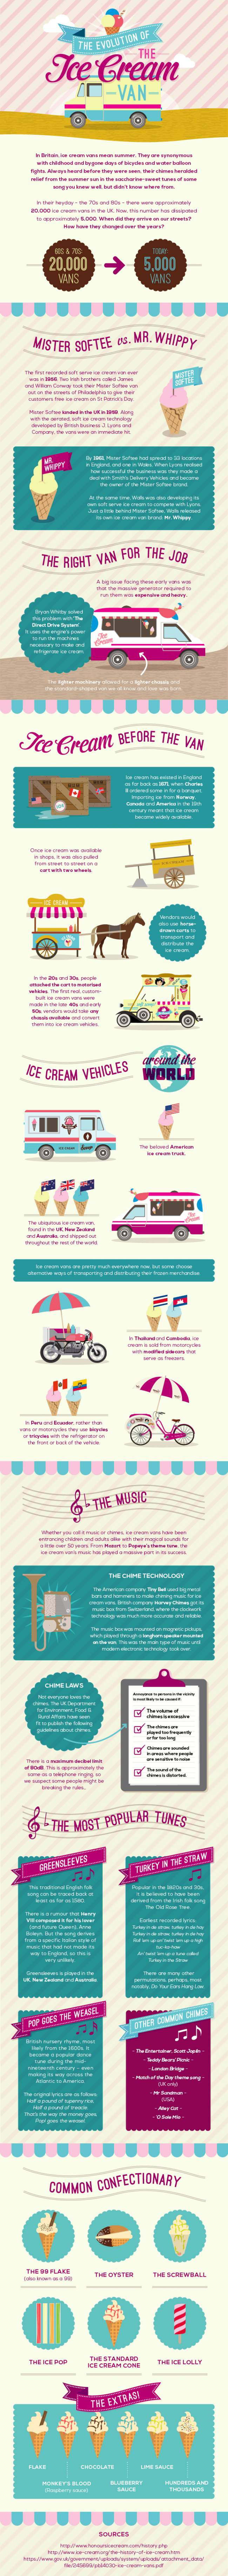 Evolution of Ice Cream Van